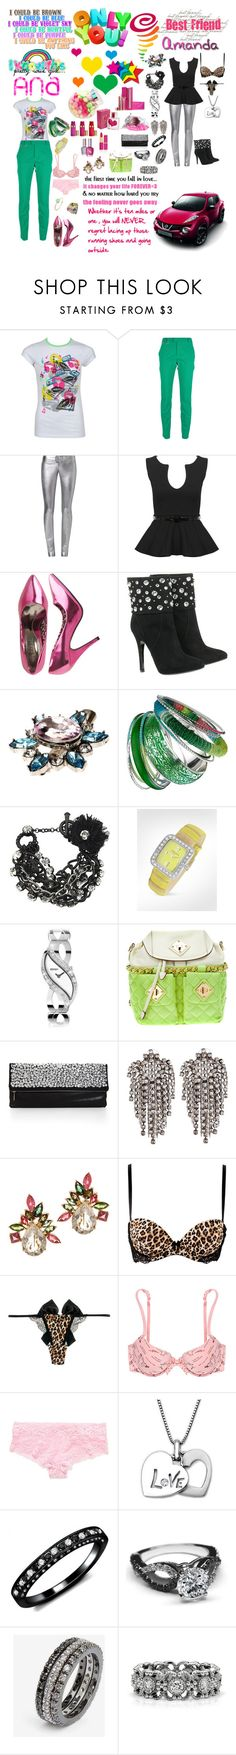 """""""ana x amanda"""" by dani-elle ❤ liked on Polyvore featuring Estée Lauder, Love Quotes Scarves, Dsquared2, SLY 010, Wet Seal, Balmain, ASOS, Dorothy Perkins, Betsey Johnson and Forzieri"""